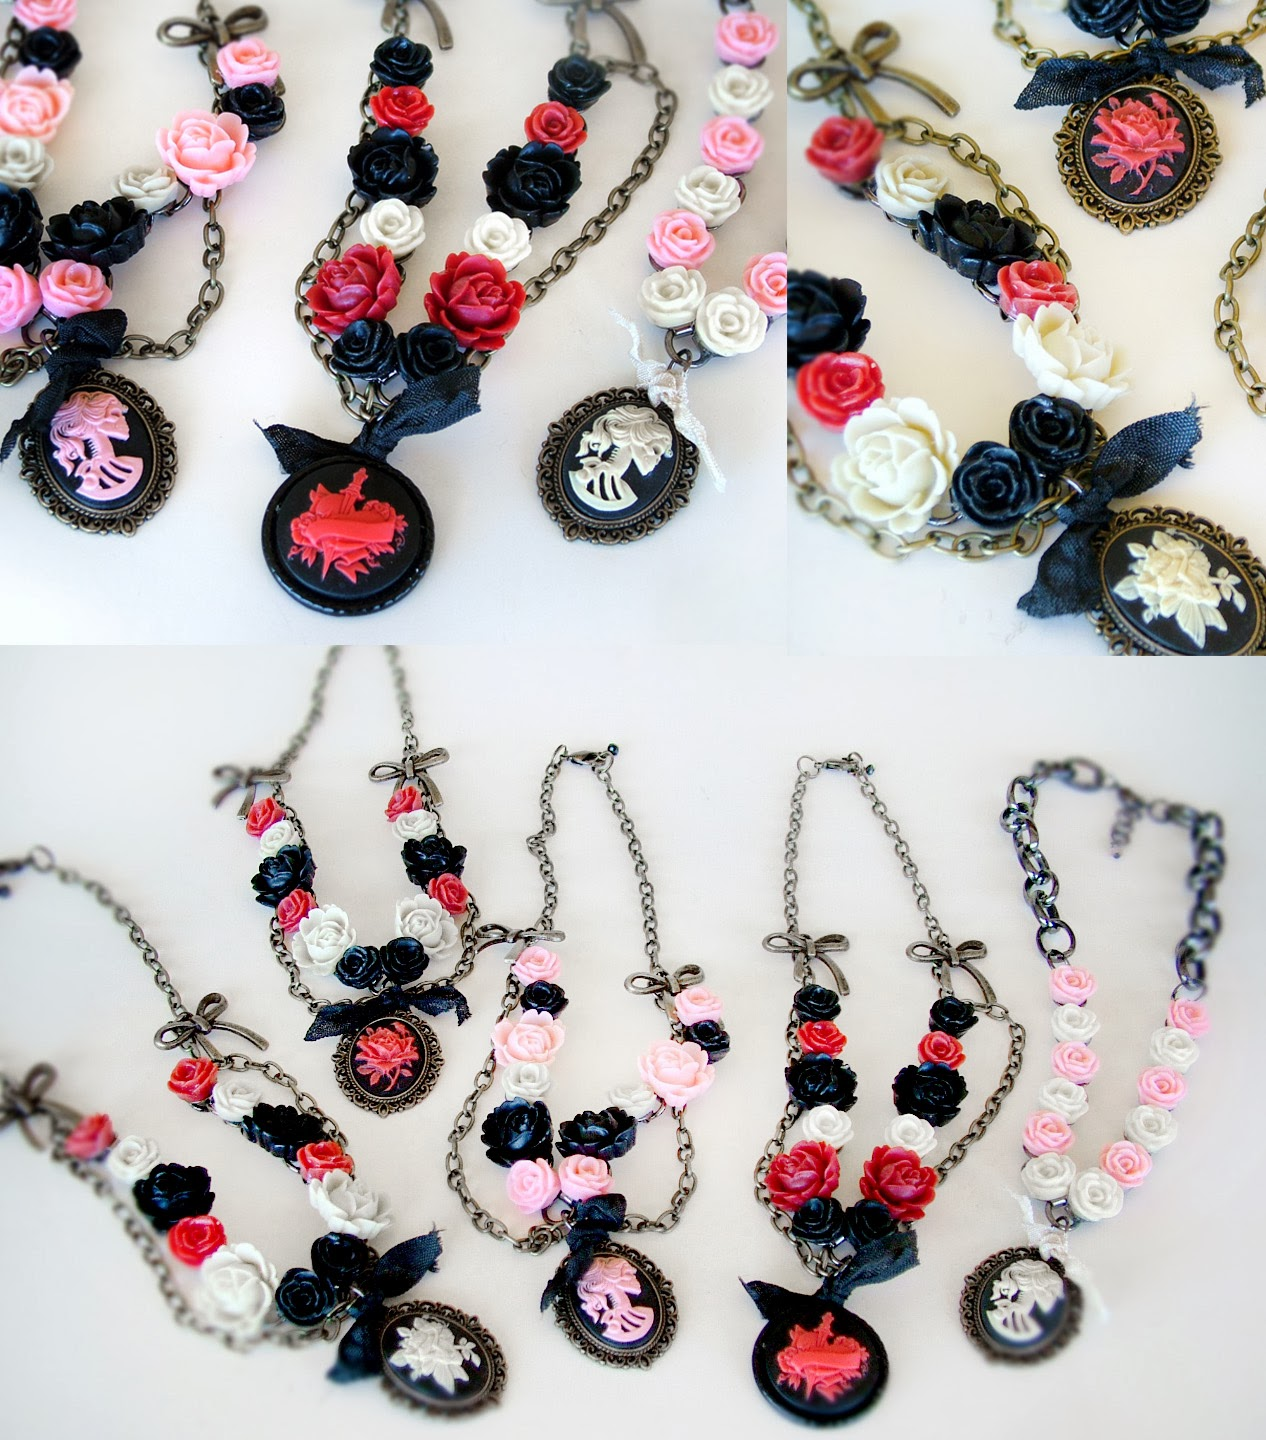 Red Black and Hot pink rose and cameo necklaces by WATTO's Wife